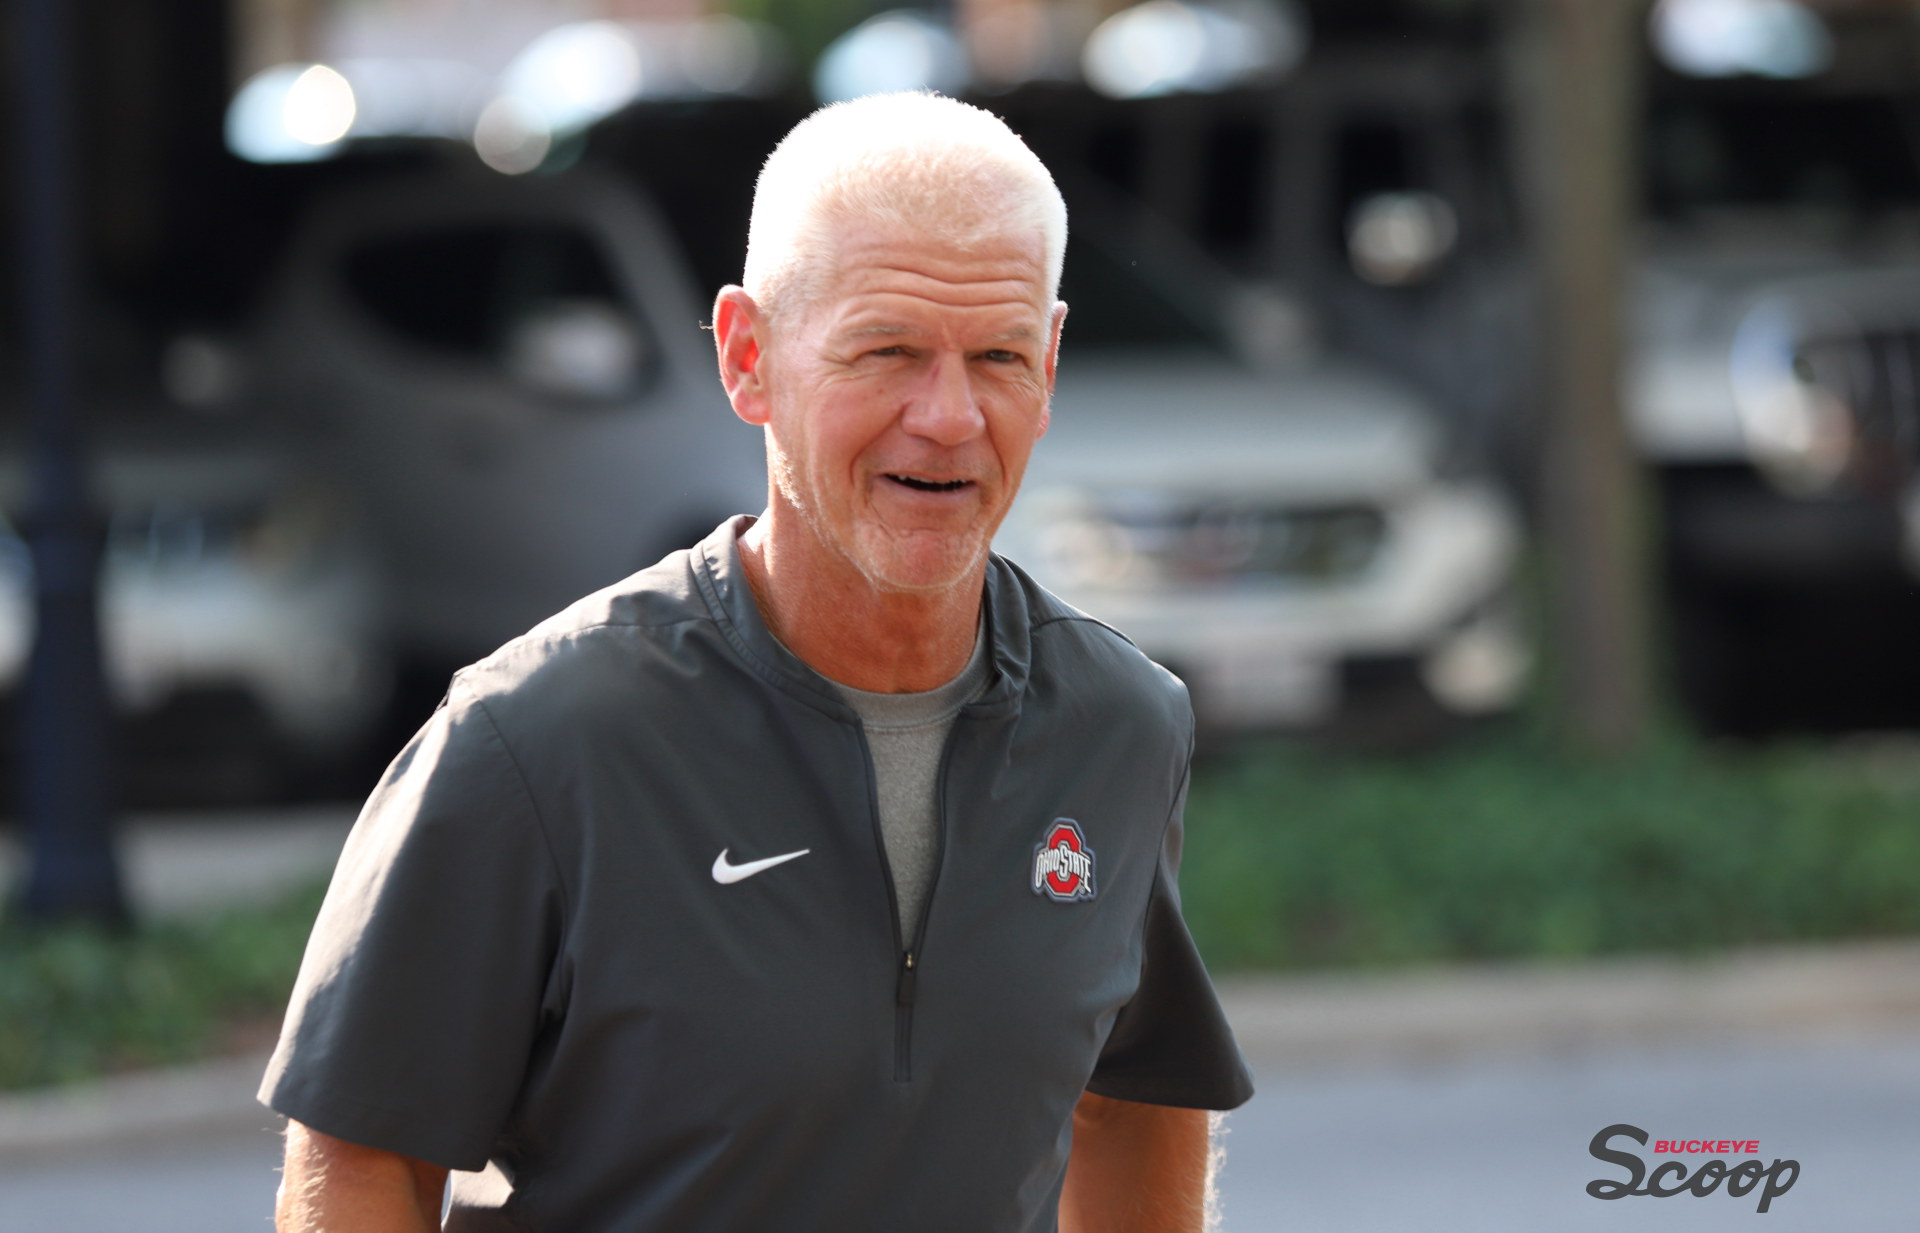 Ohio State football Kerry Coombs